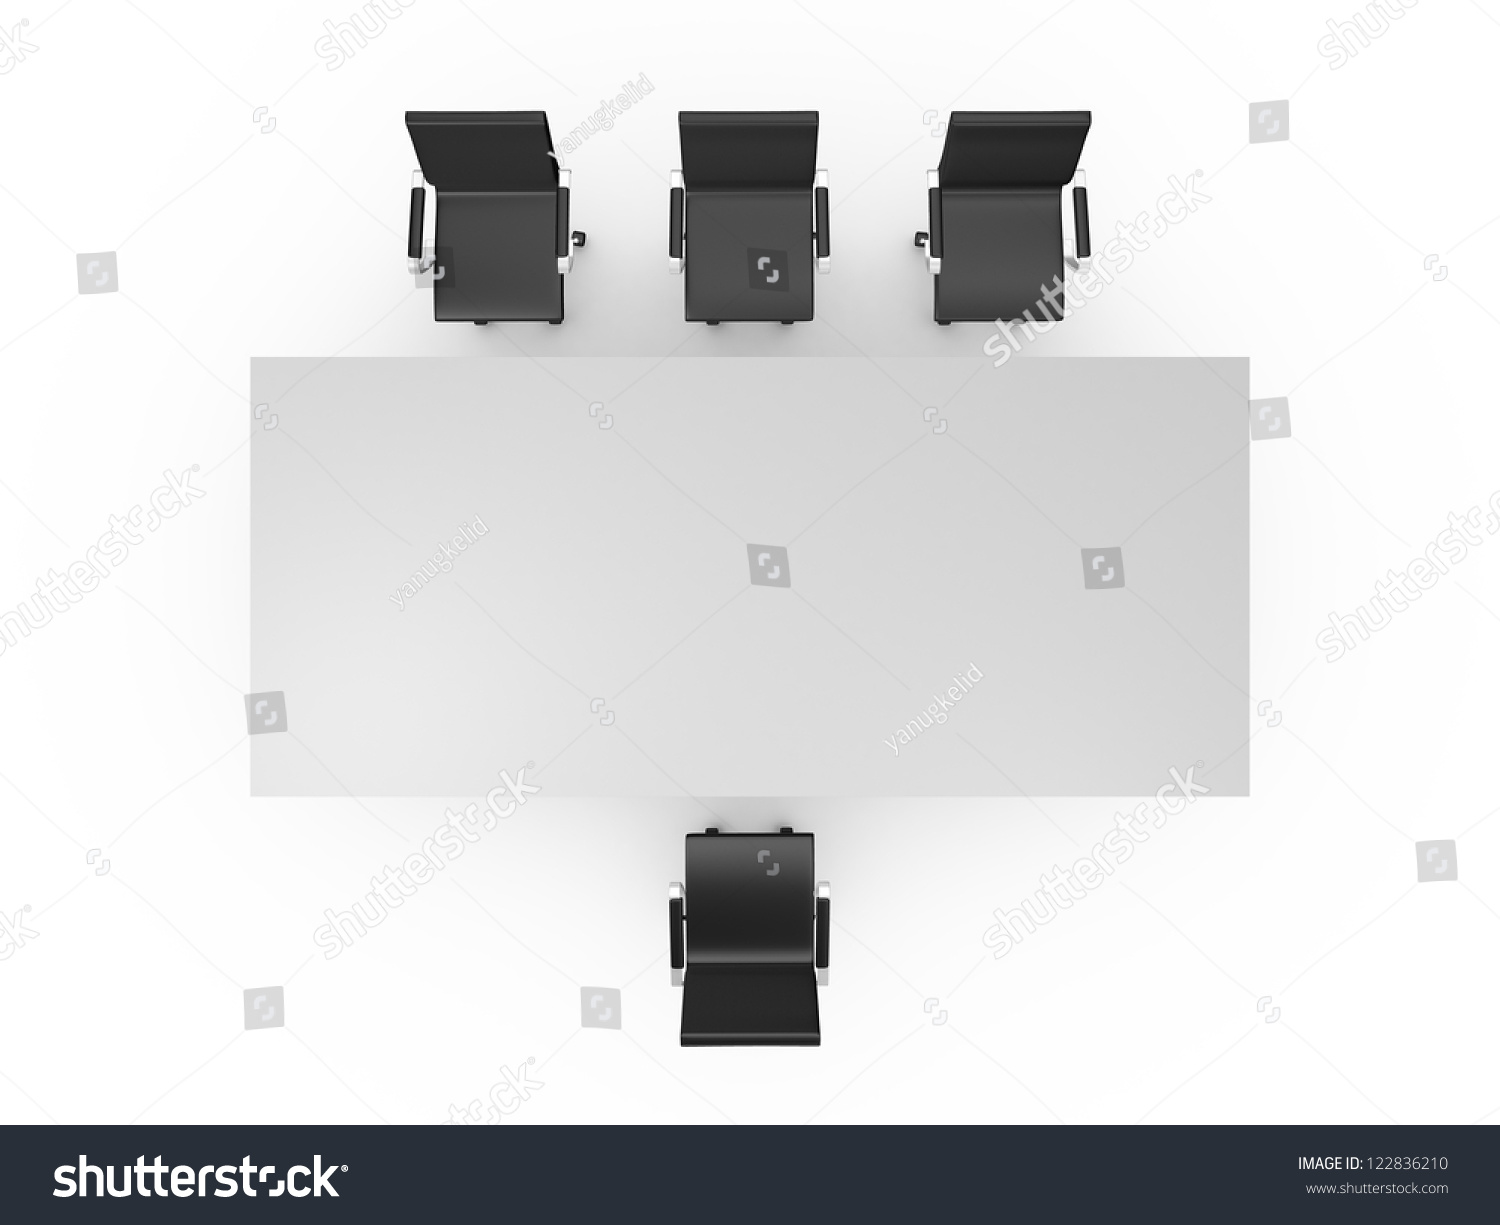 Office furniture top view - Luxury Top View Vector Realistic Isolated Furniture For Office Cabinet Or